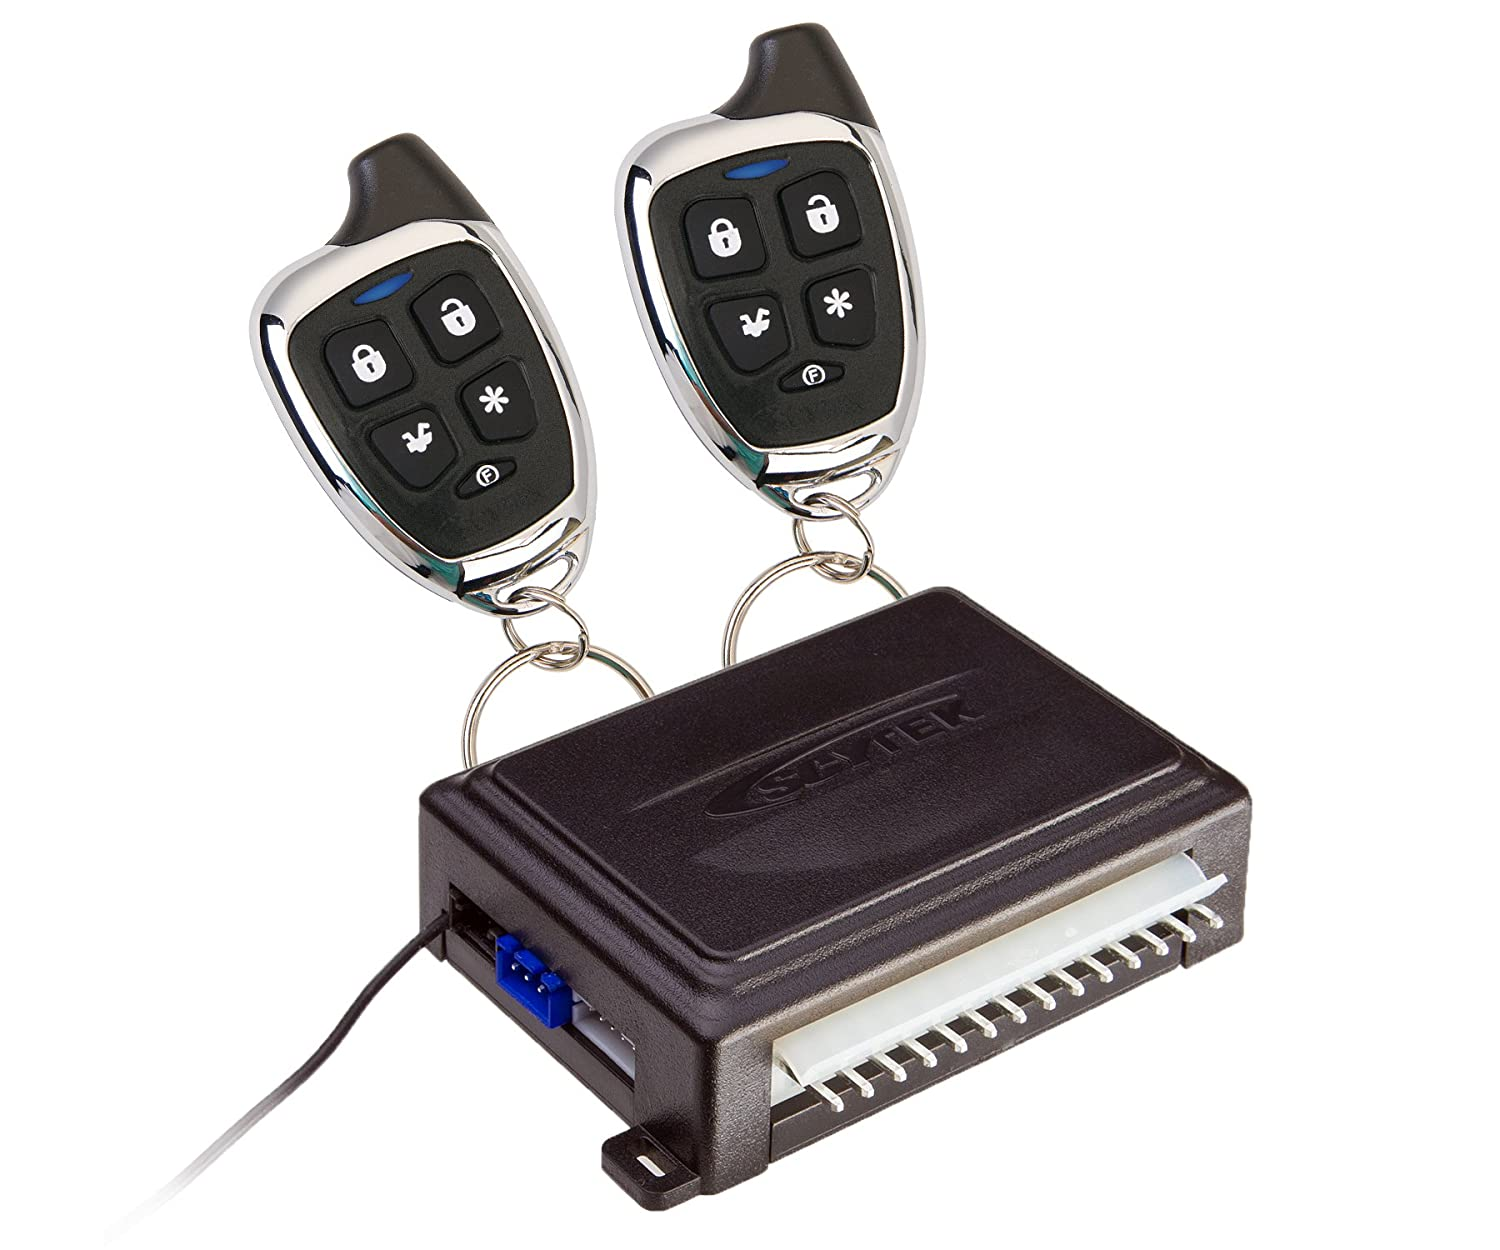 Amazon.com: Scytek Galaxy G27 Vehicle Security System with Keyless Entry:  Cell Phones & Accessories